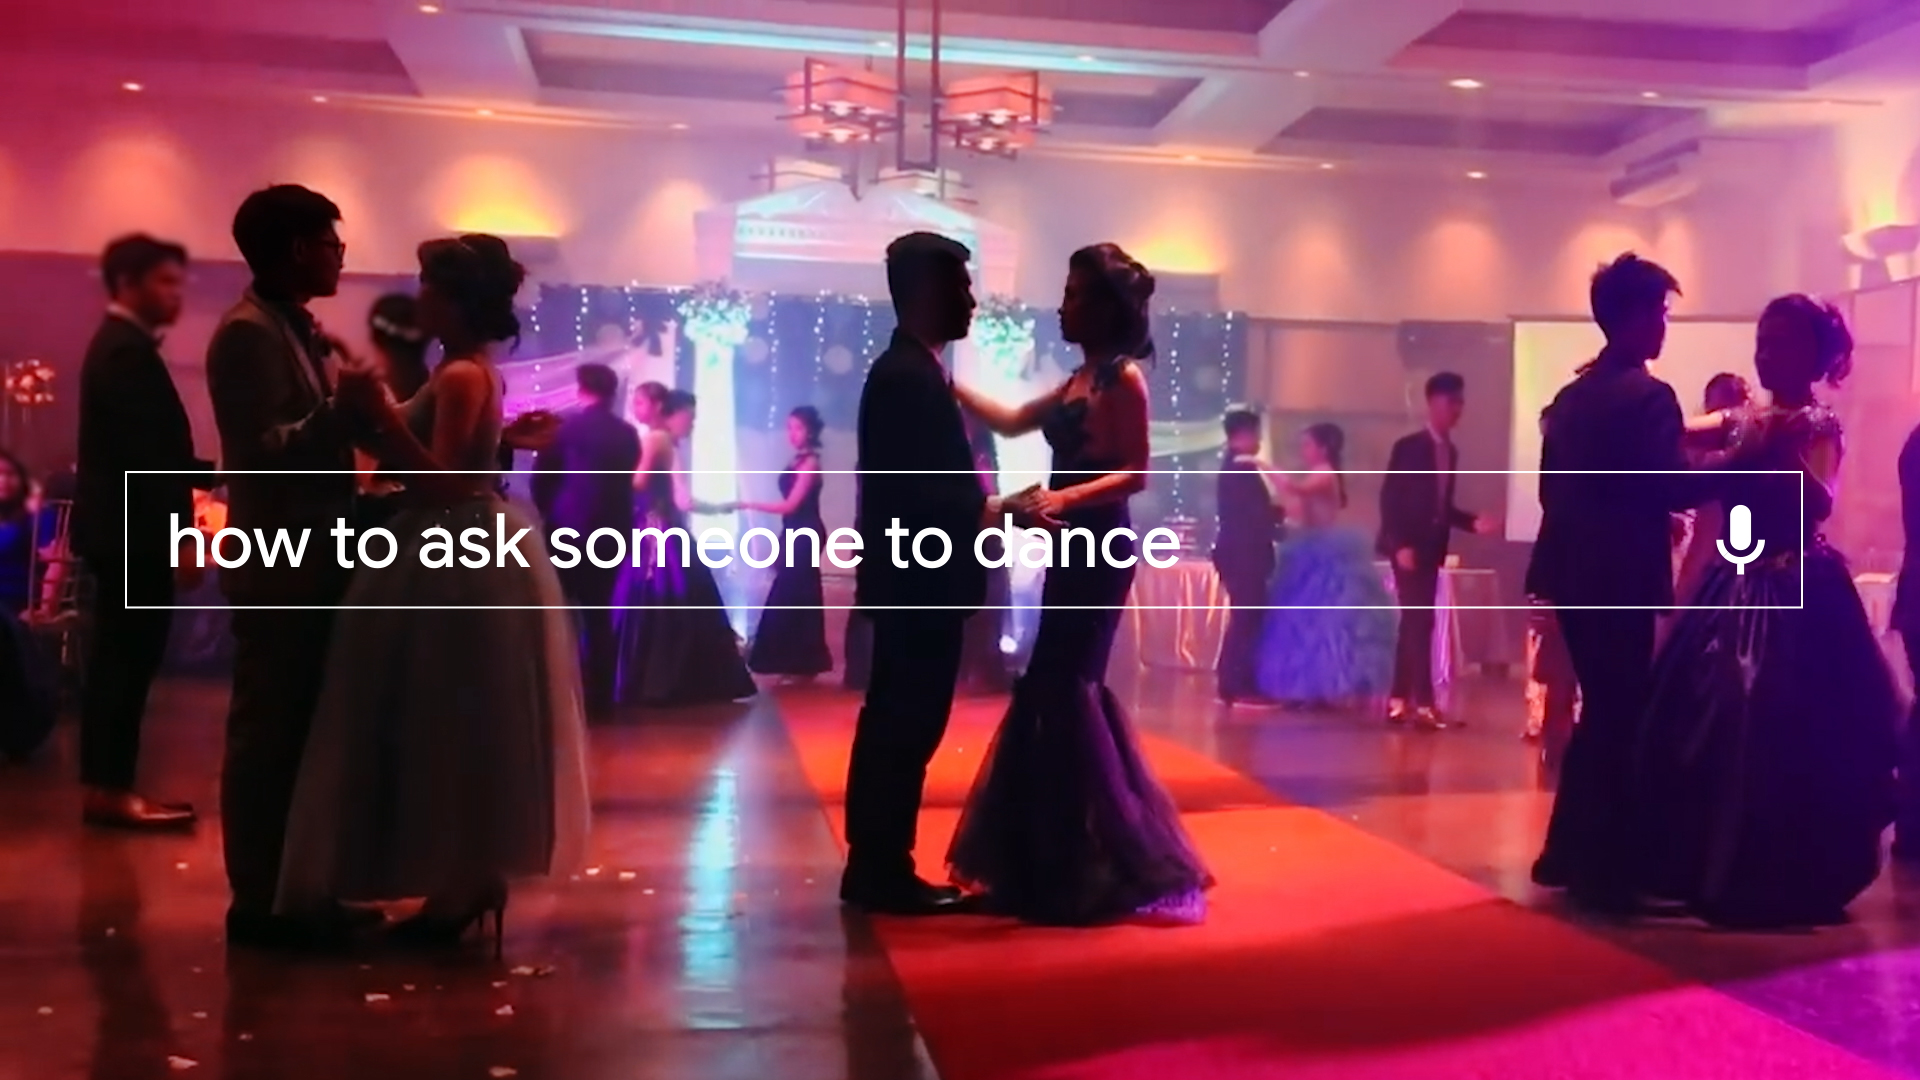 Google shows you how to ask someone to dance